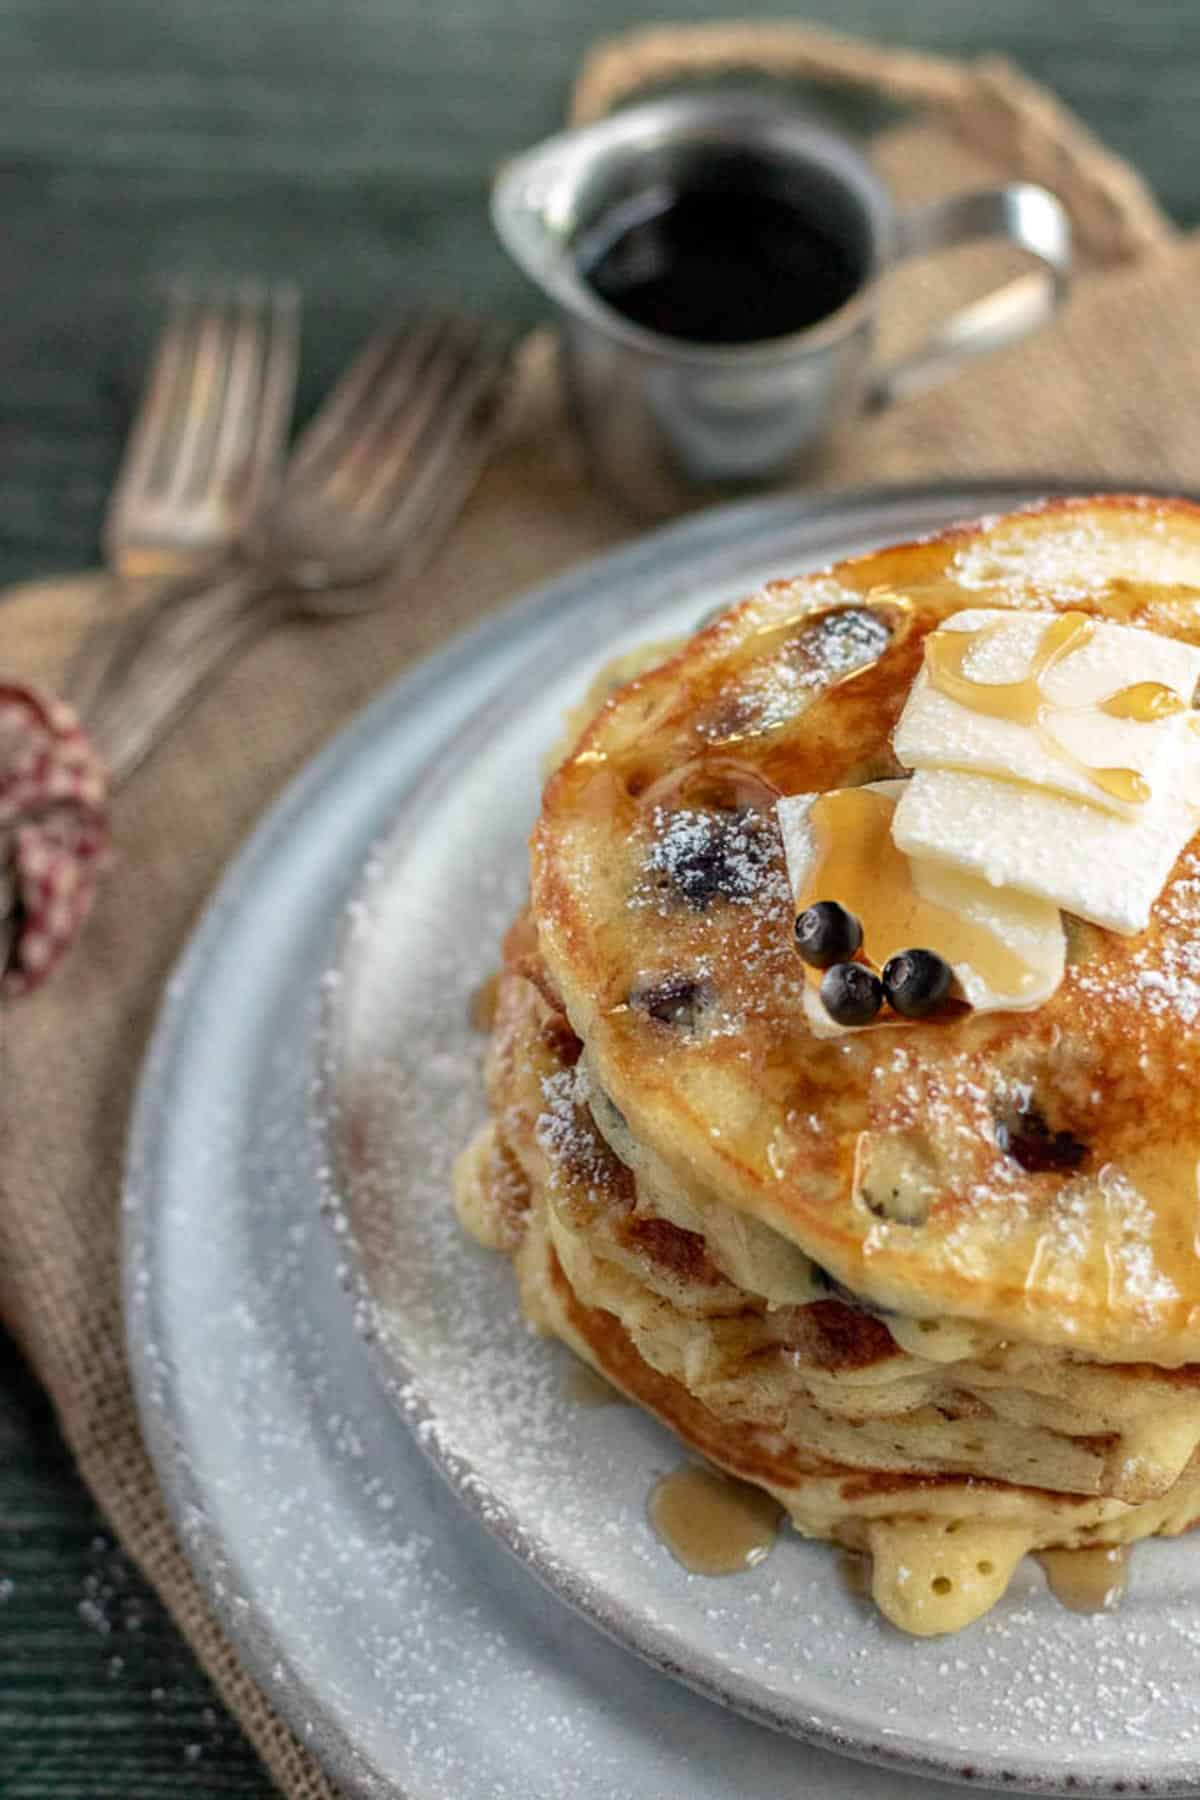 blueberry pancakes on a grey plate with forks and syrup